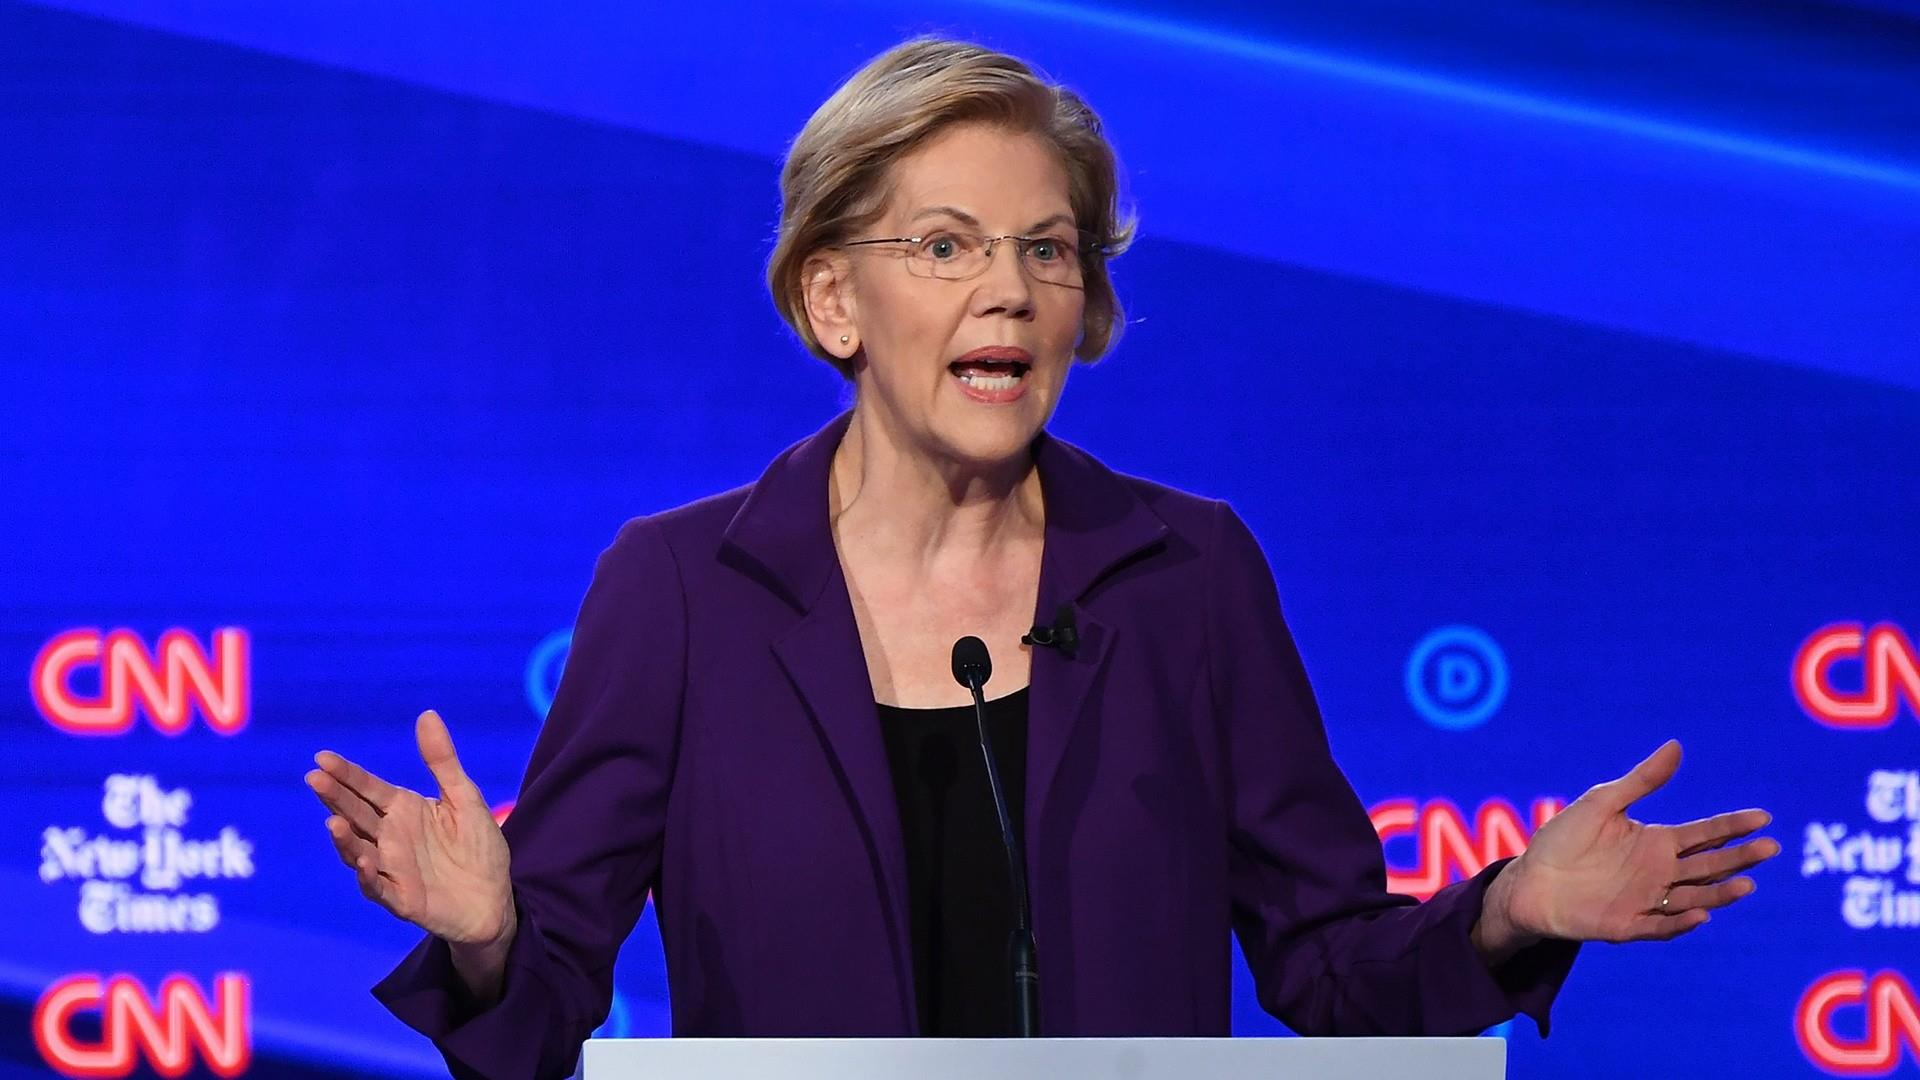 Democrats pounce on Warren in 4th primary debate